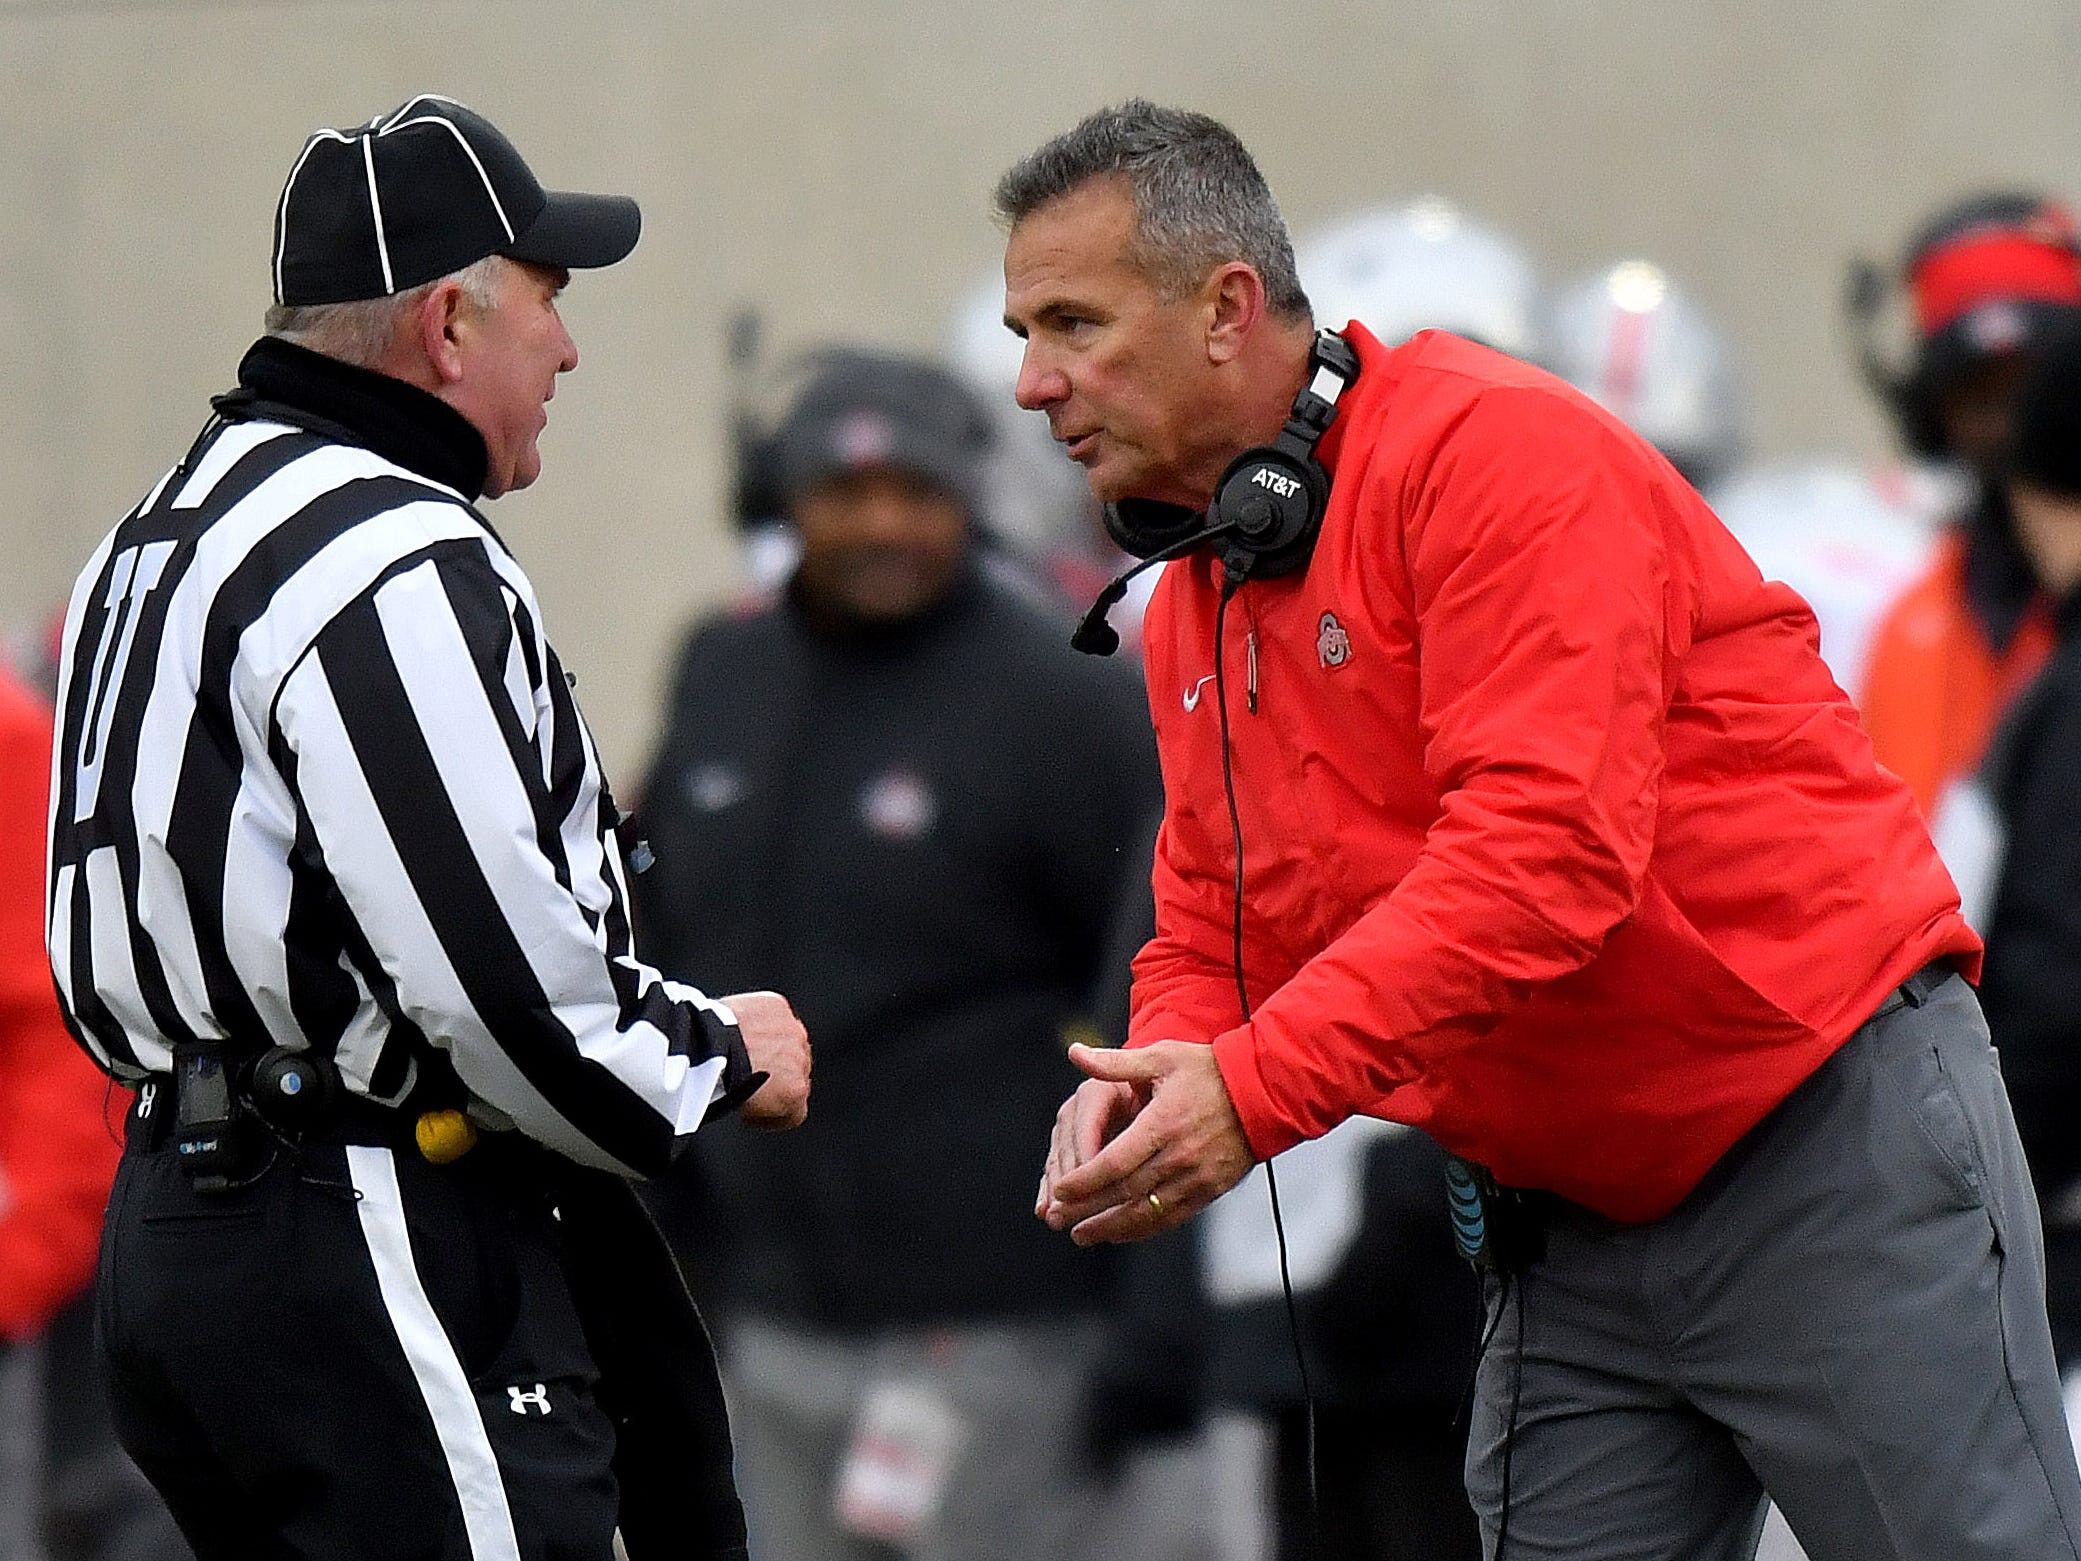 Buckeye head coach Urban Meyer has a word and a smile for one of the officials in the fourth quarter.